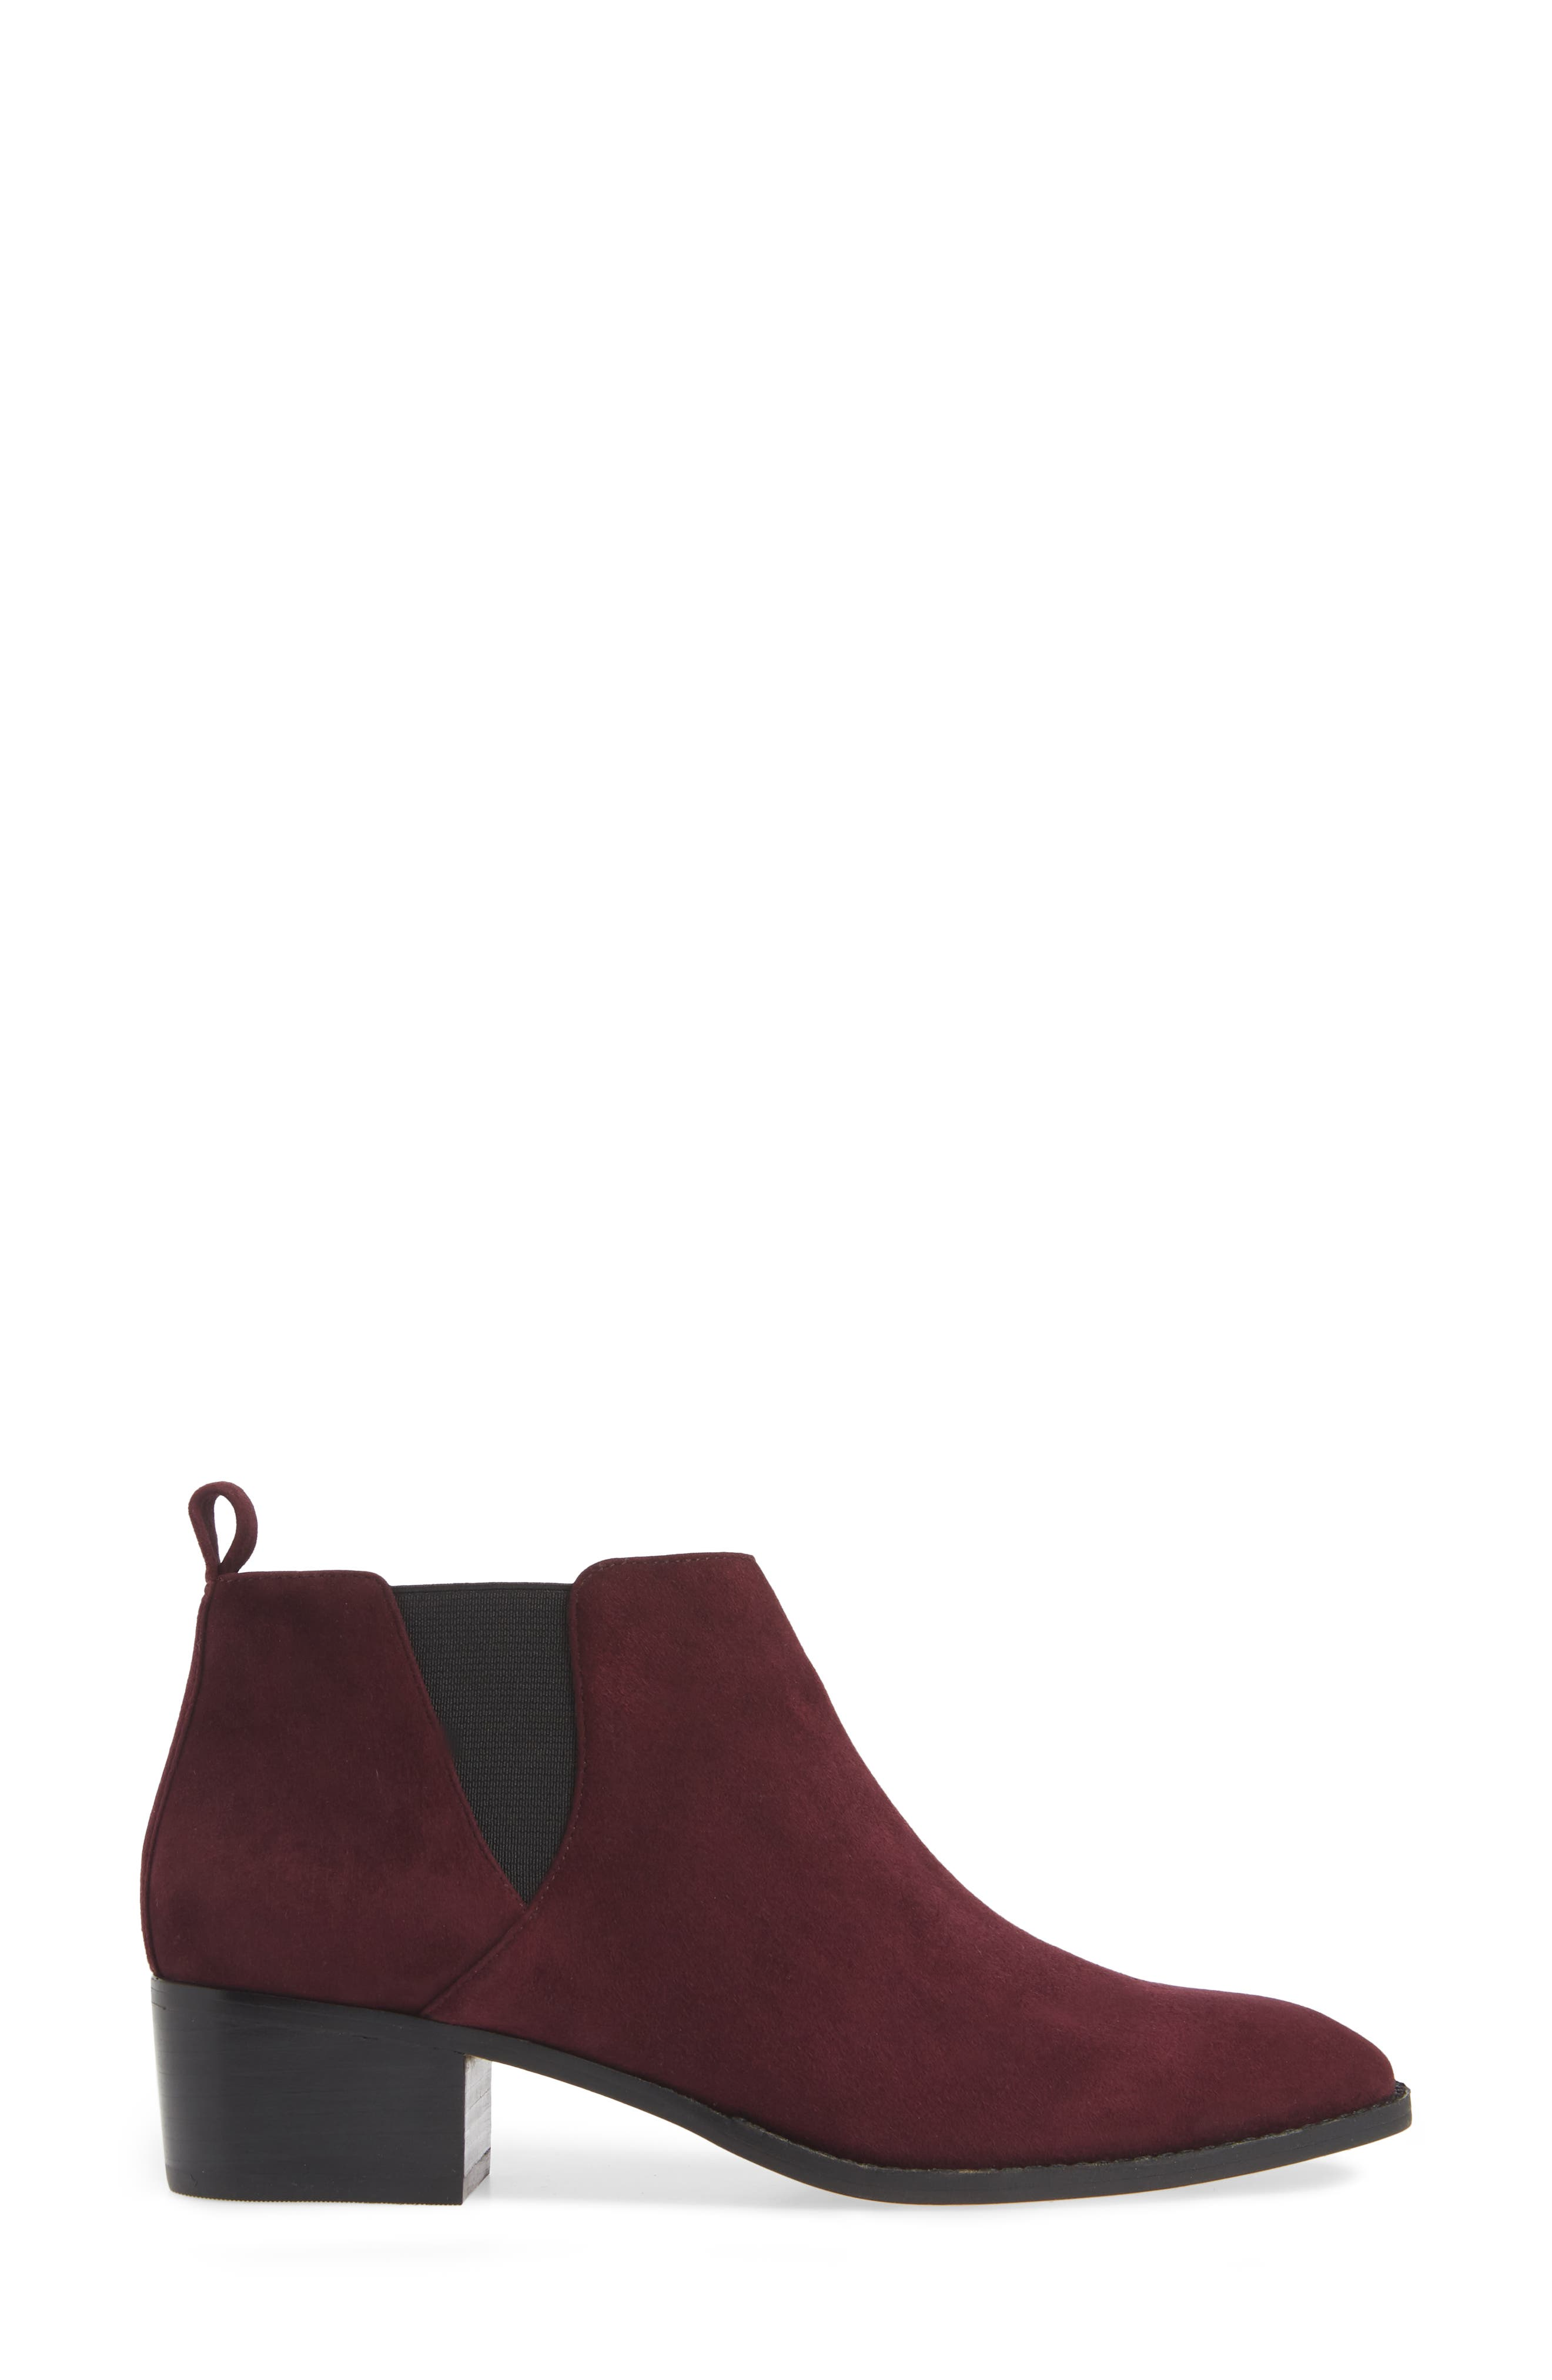 Jahlily Chelsea Bootie,                             Alternate thumbnail 3, color,                             DARK PLUM SUEDE